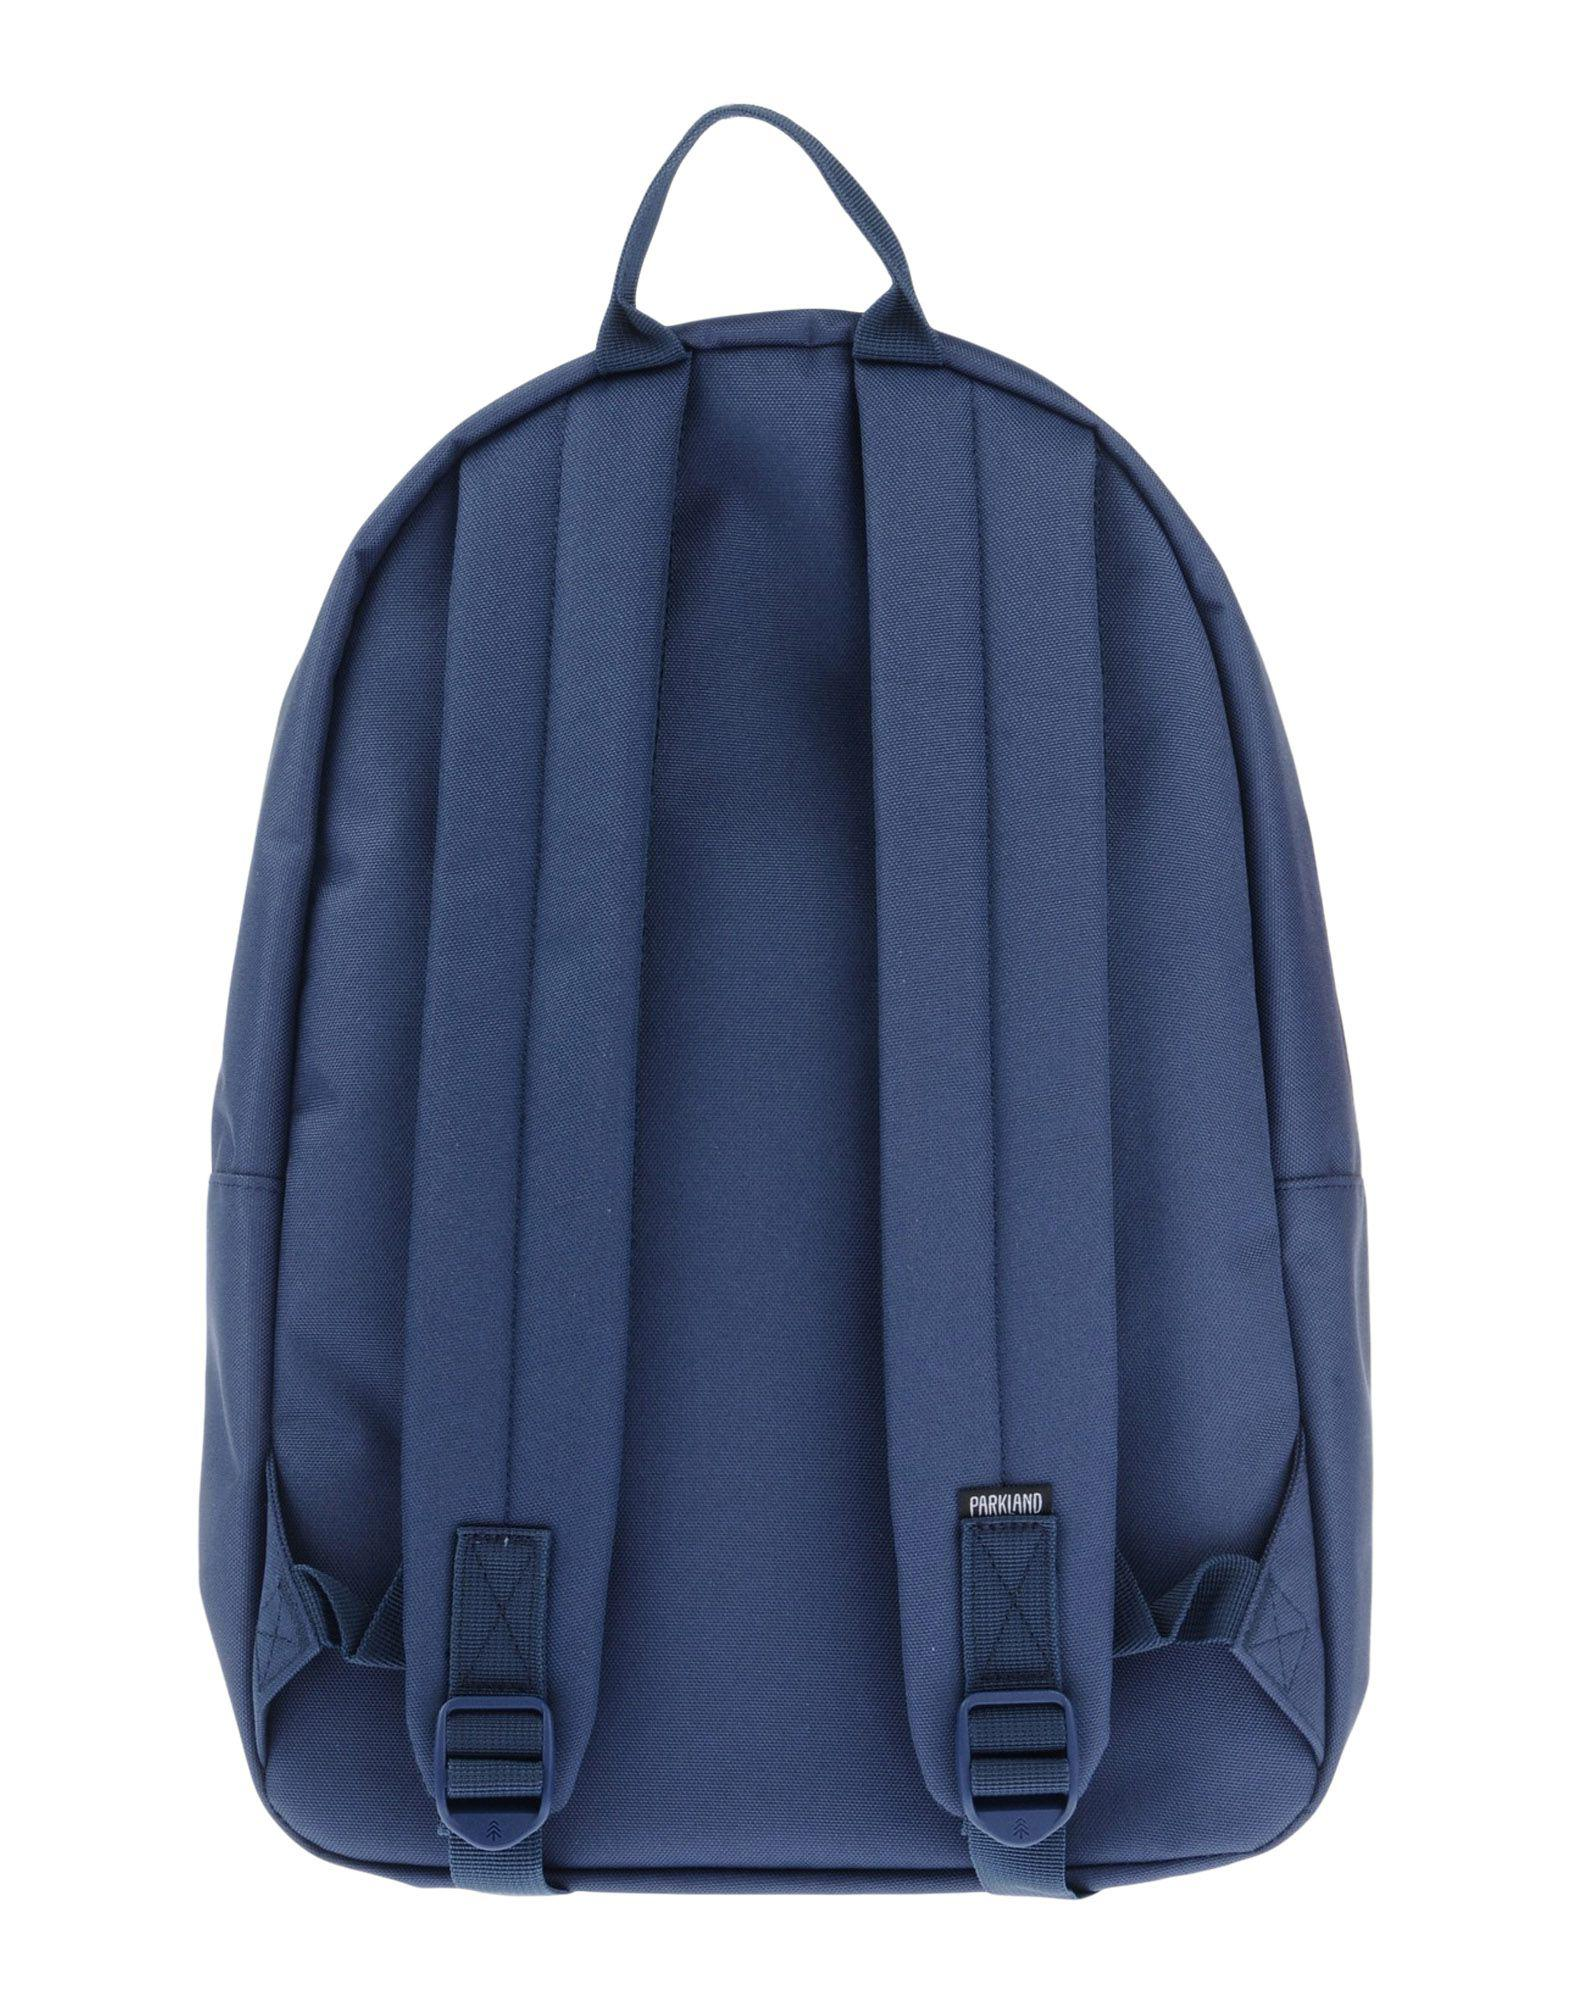 Parkland Synthetic Backpacks & Bum Bags in Slate Blue (Blue)